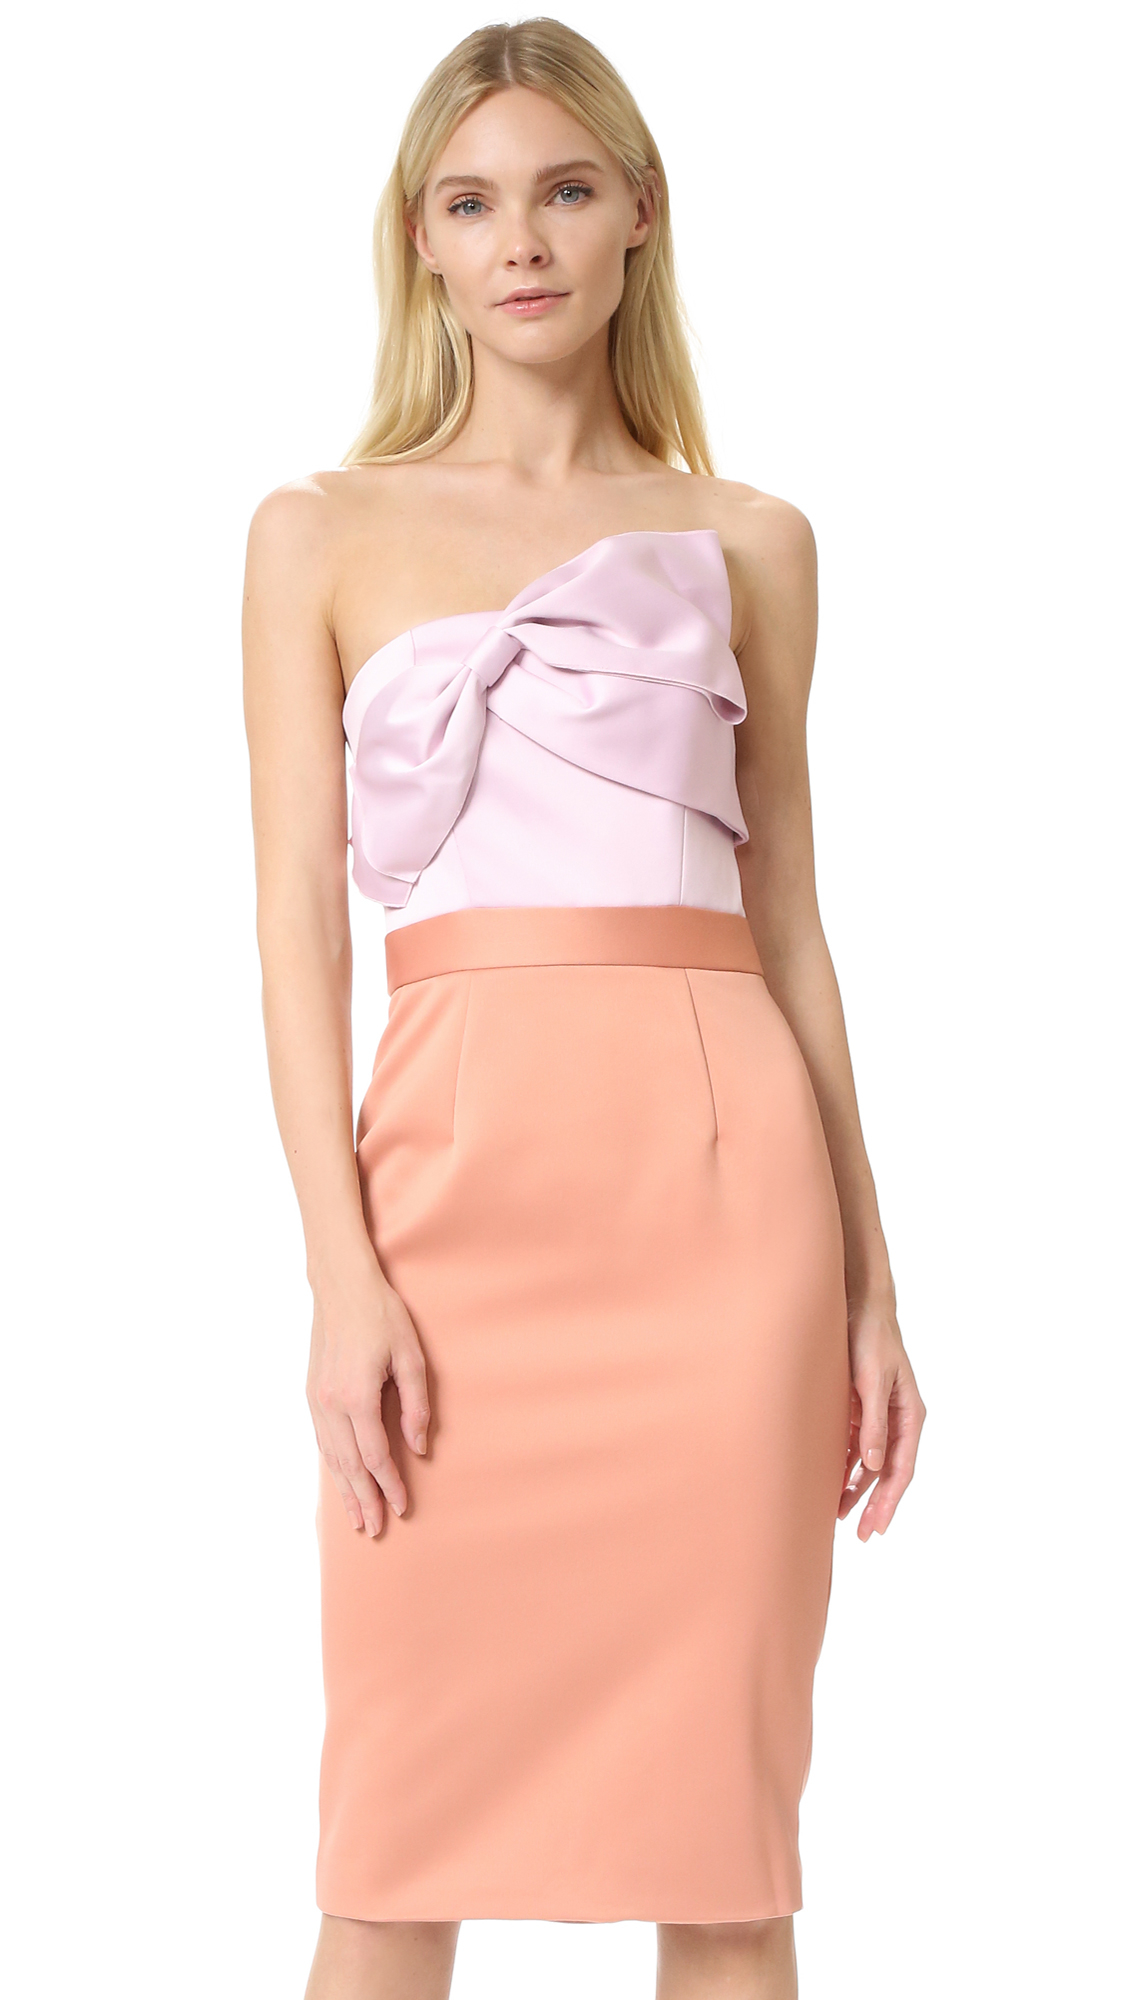 Cynthia rowley Strapless Bow Dress in Pink - Lyst